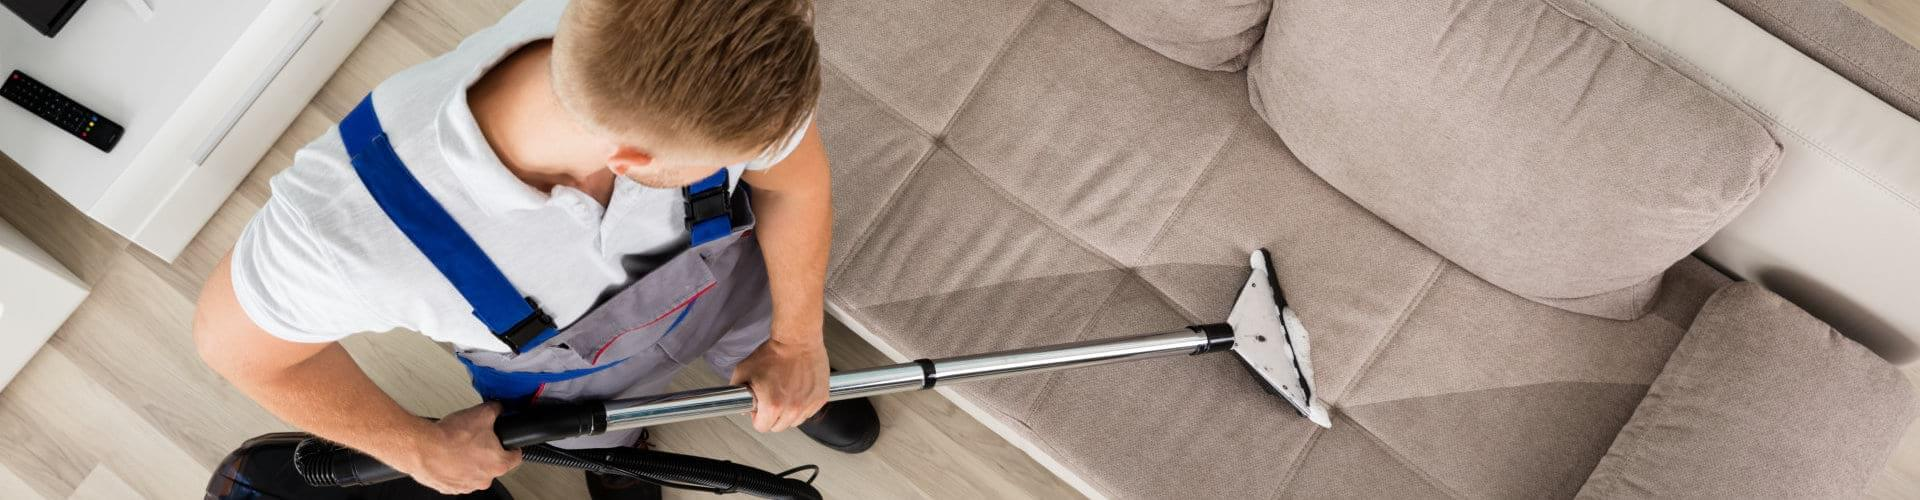 man cleaning the couch using vacuum cleaner